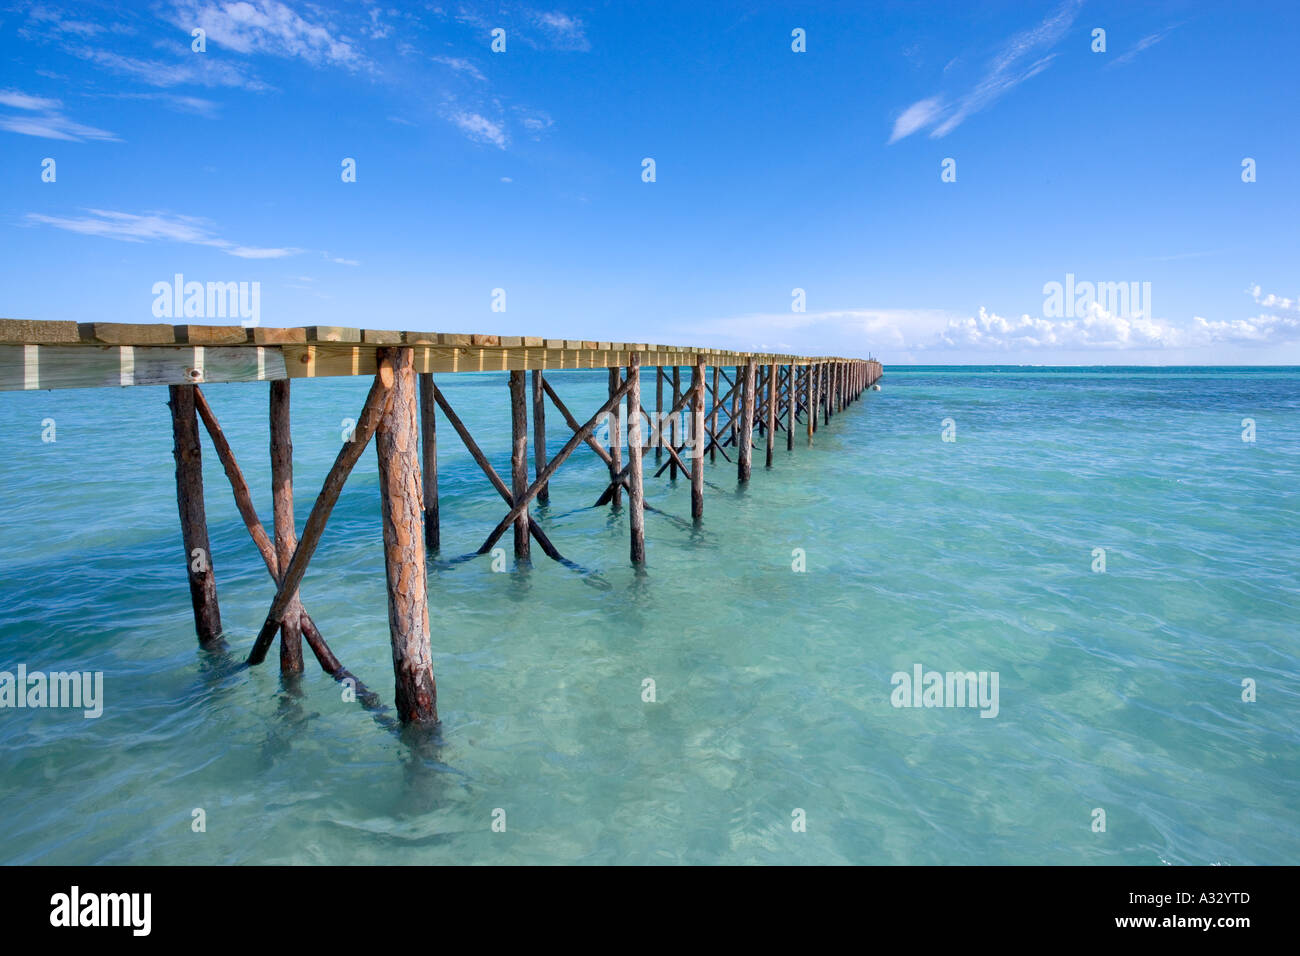 Bahamas, Abaco.  Long public dock stretching out into the ocean. - Stock Image